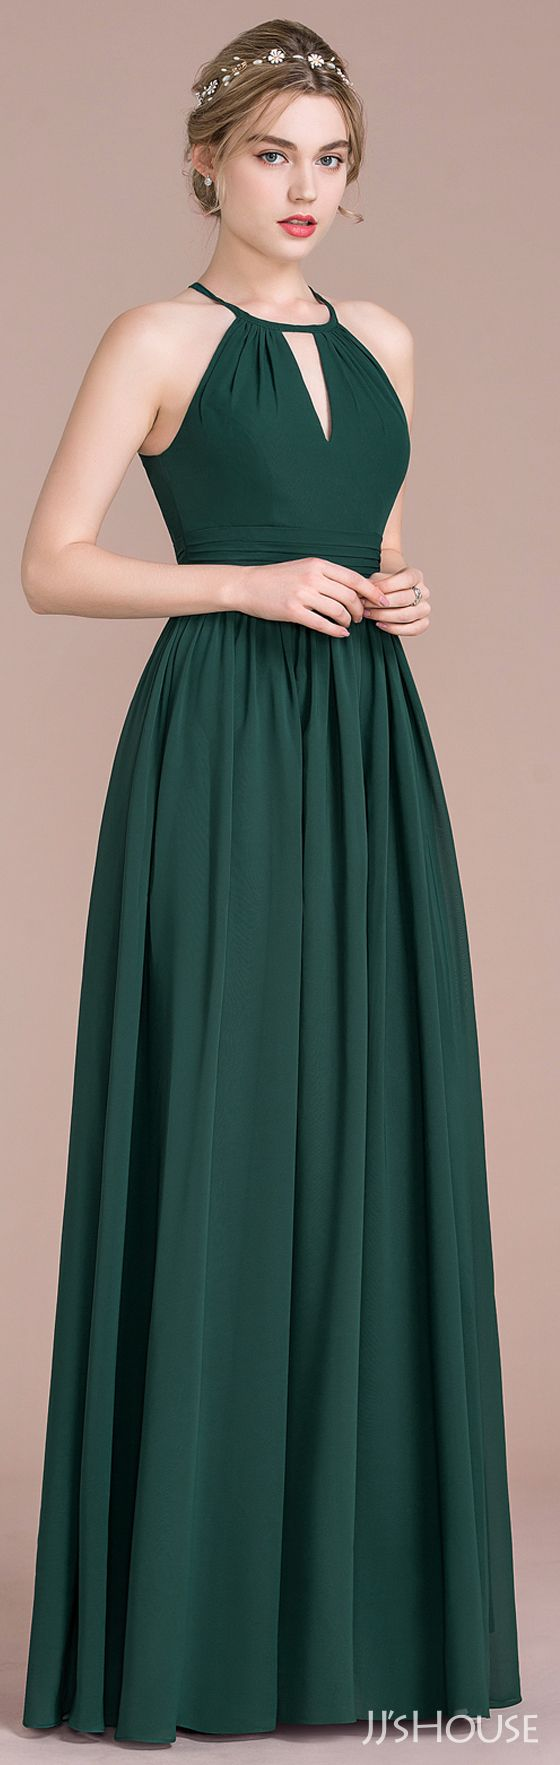 The last person thought this would be a good bridesmaid dress. I think it would make an equally good evening gown with out the wedding attached.